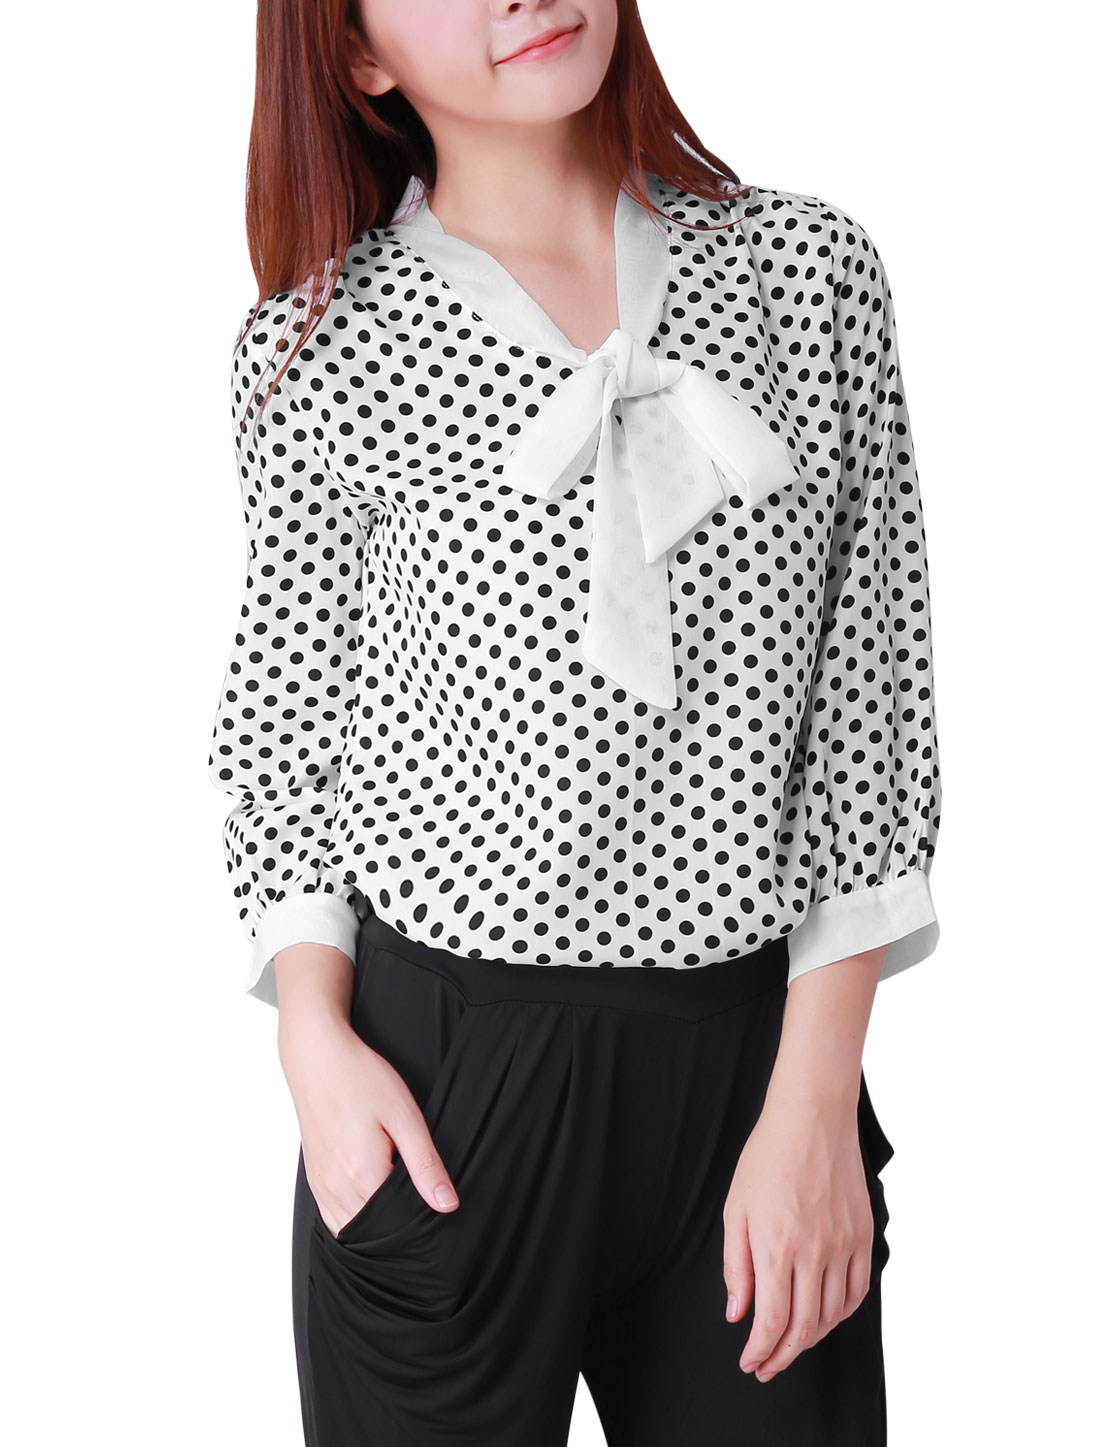 Pullover Ladies Polka-Dots Pattern White Casual Blouse Top S